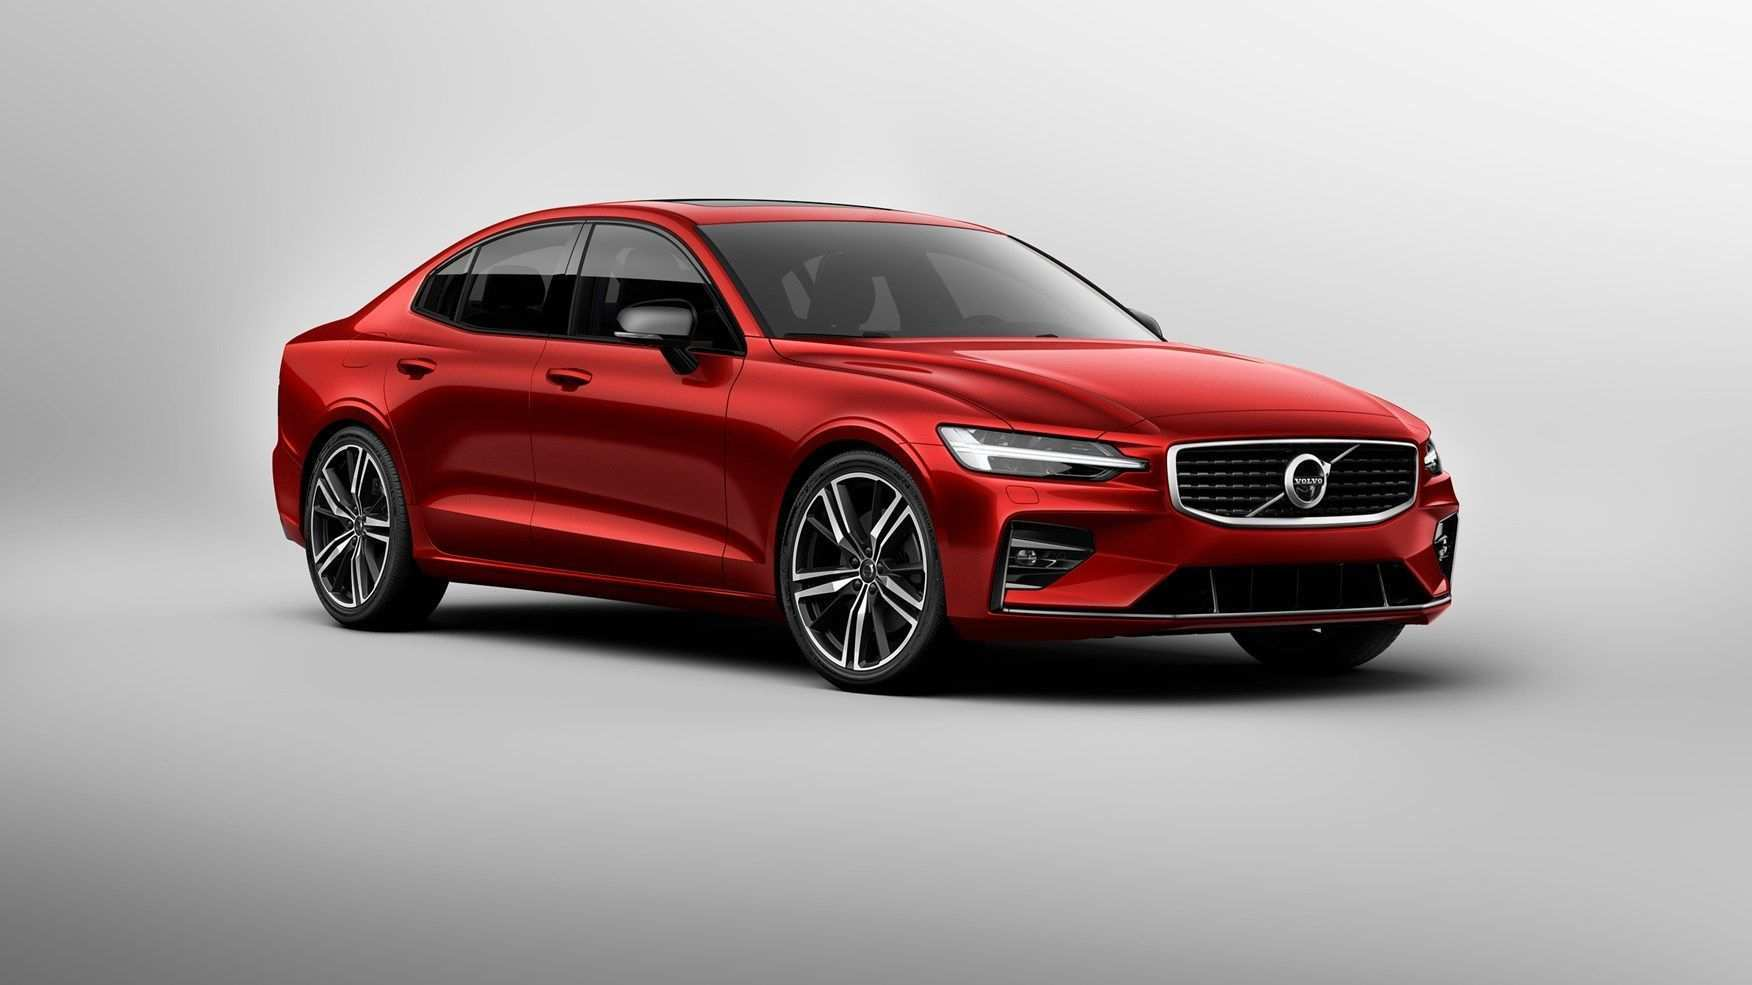 51 Great New Review Of 2019 Volvo S60 Spesification Performance and New Engine for New Review Of 2019 Volvo S60 Spesification